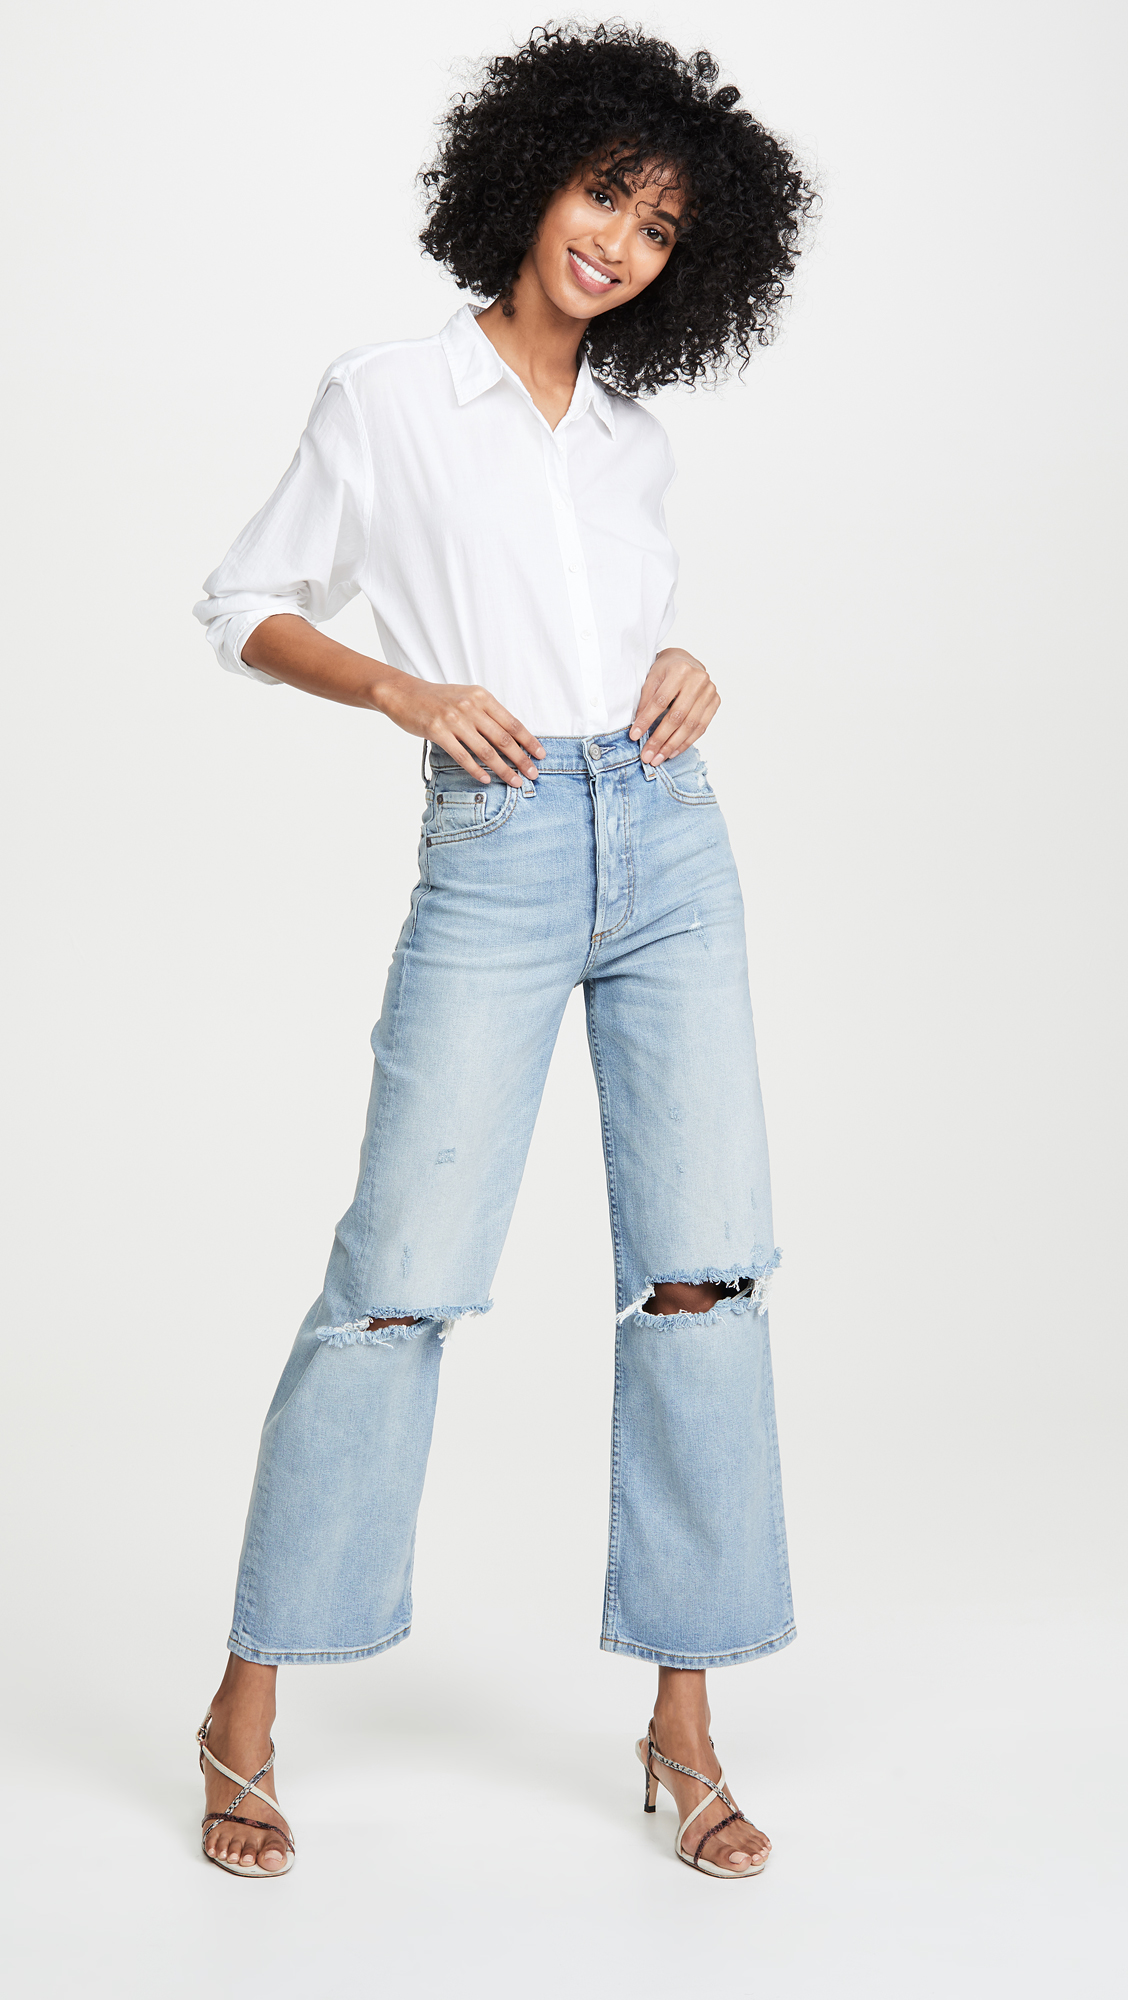 Jeans of the Week: Boyish The Mikey Wide-Leg Flares